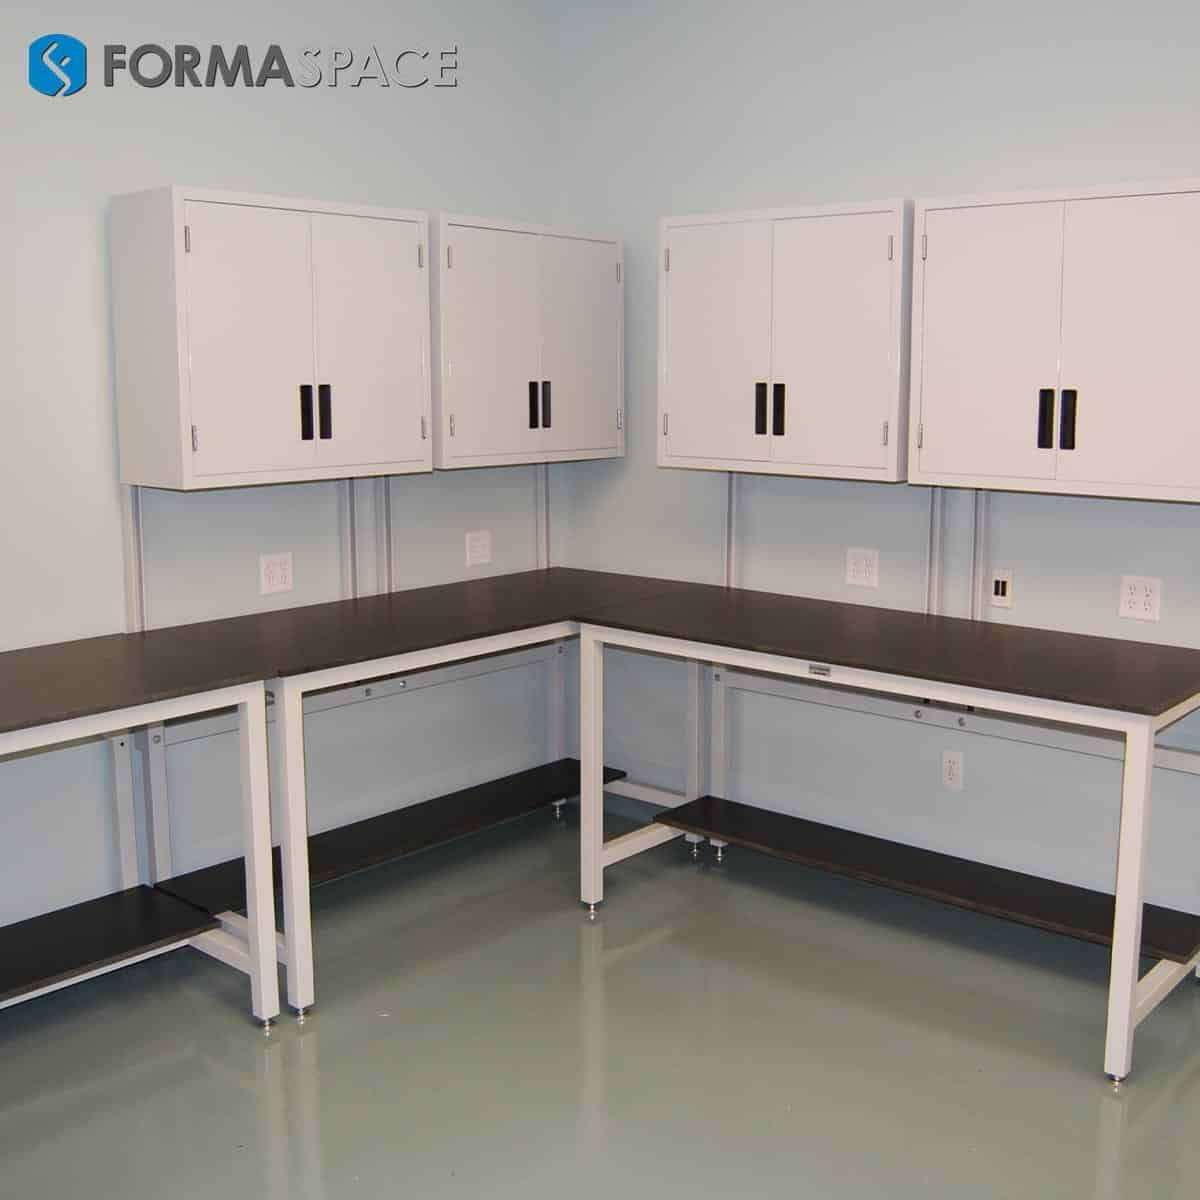 phenolic workbenches with upper cabinetry